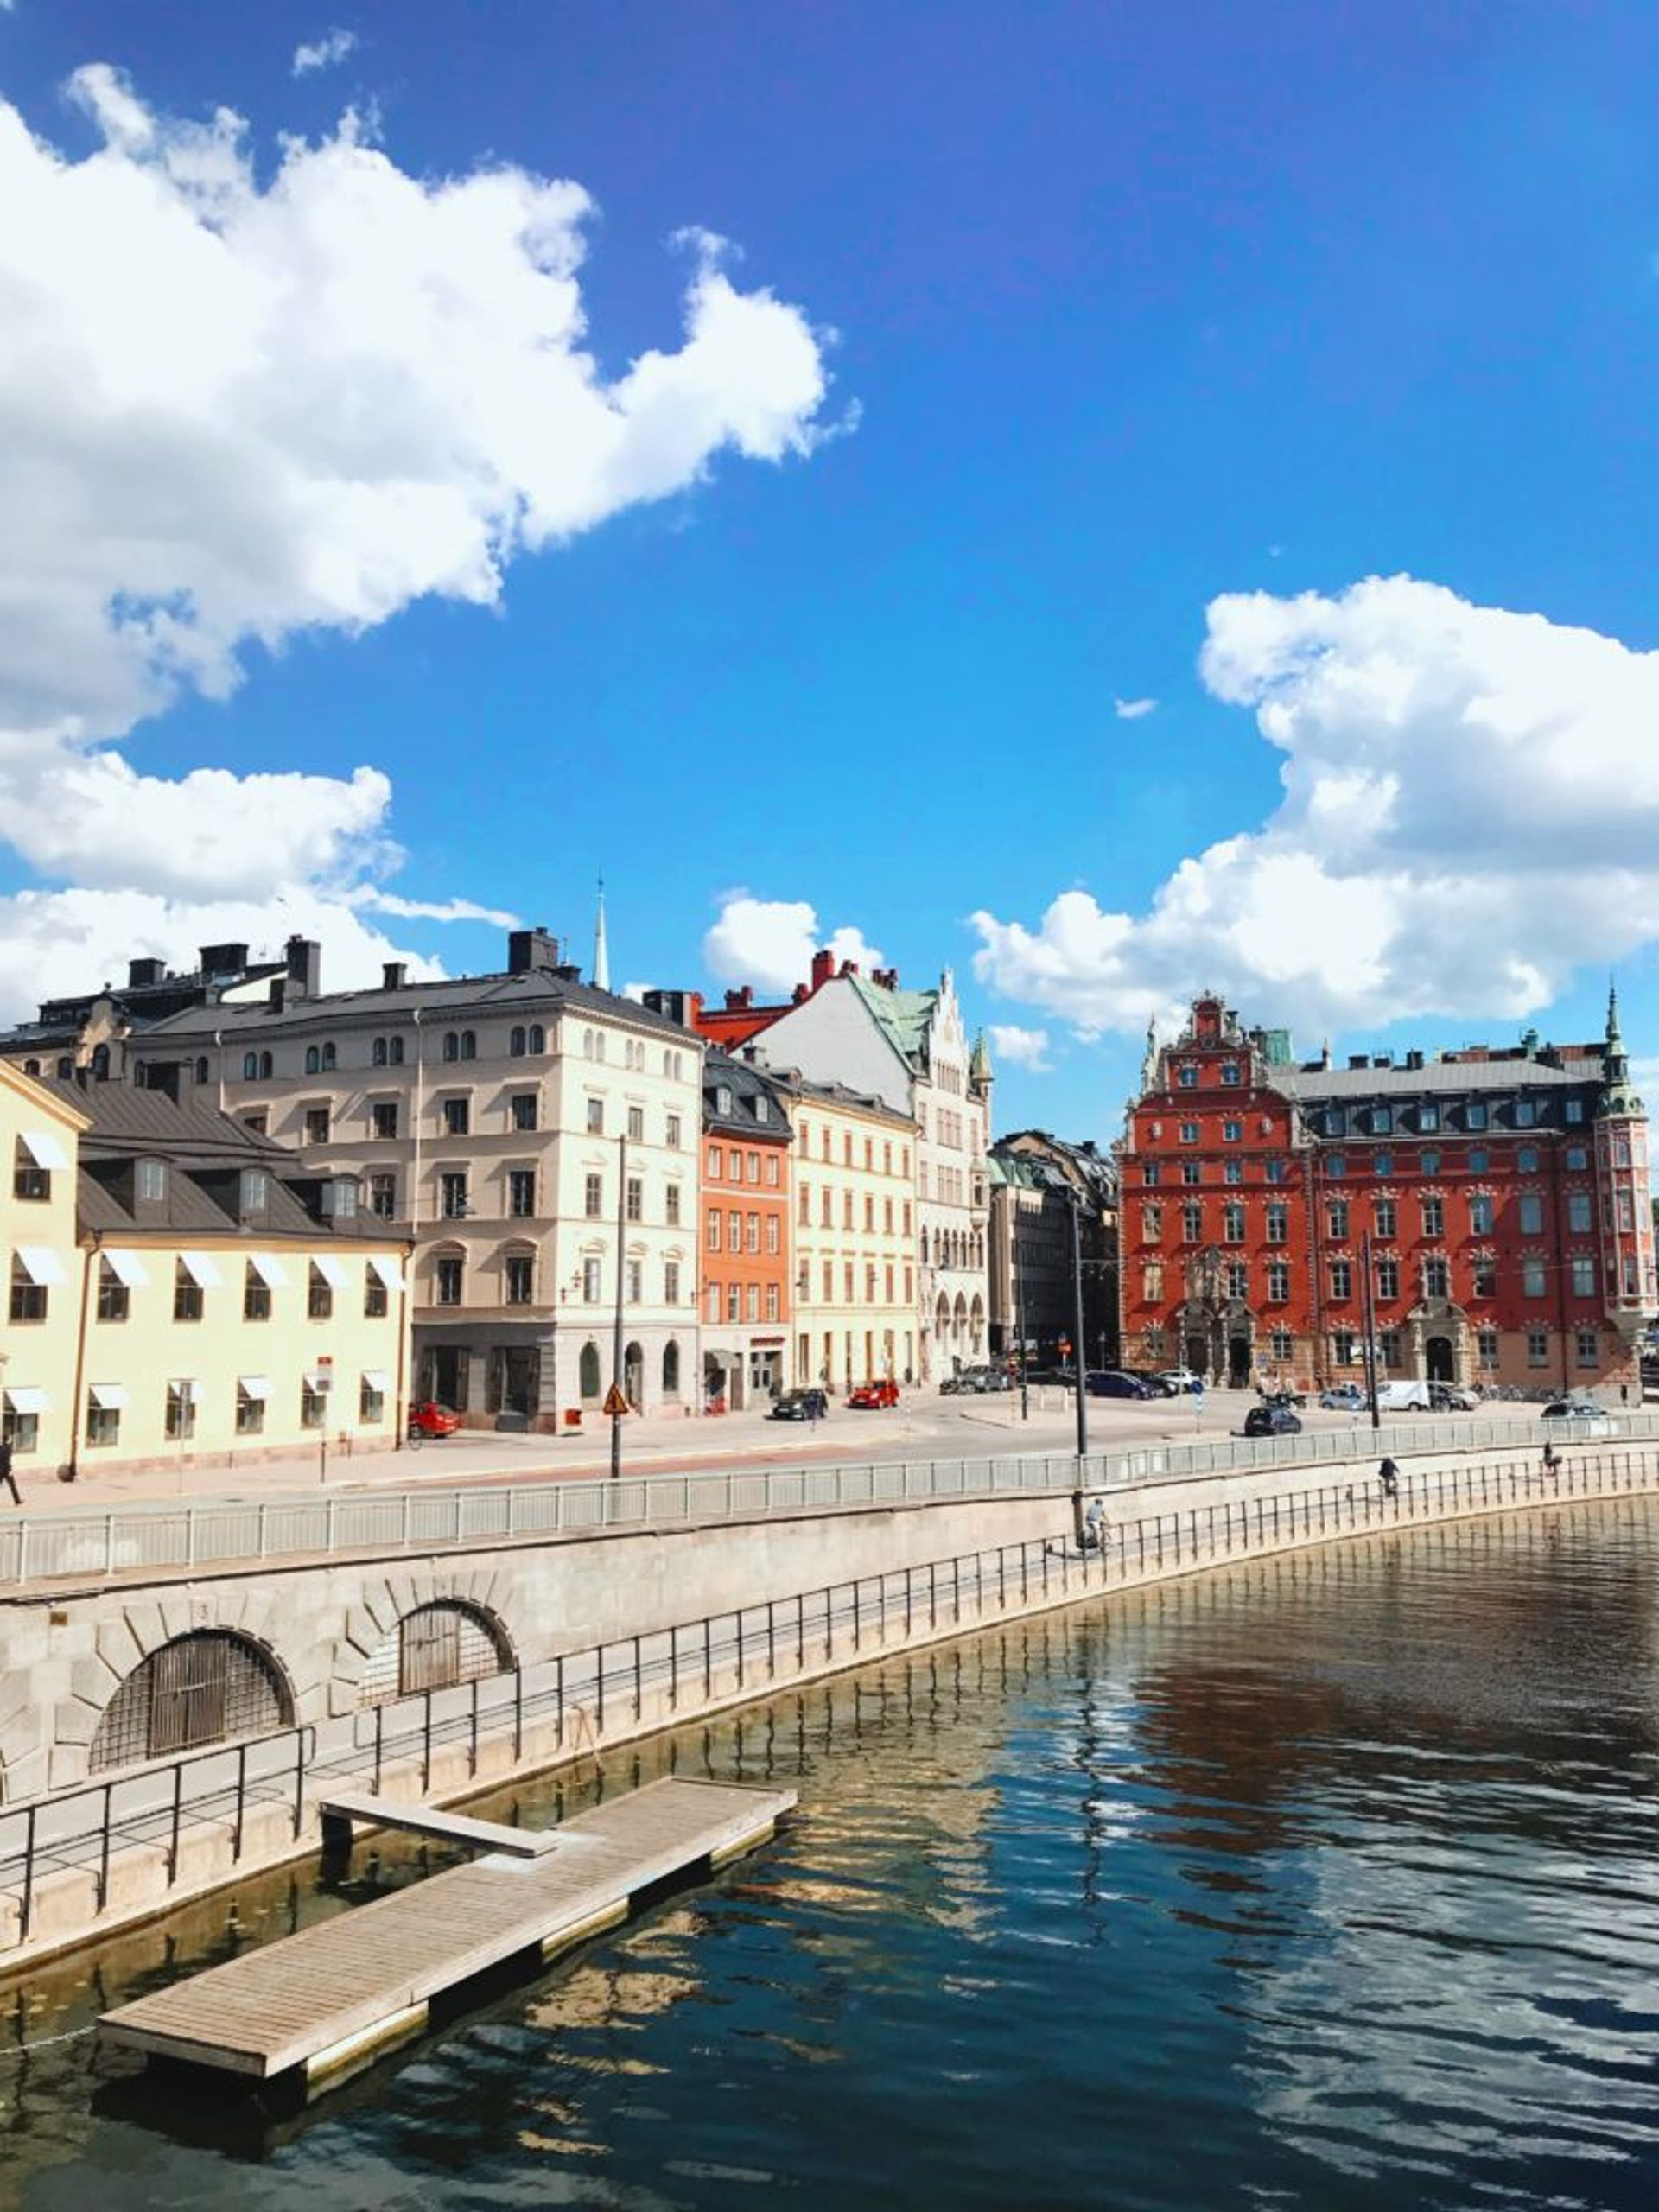 Red, white and cream coloured buildings in central Stockholm.